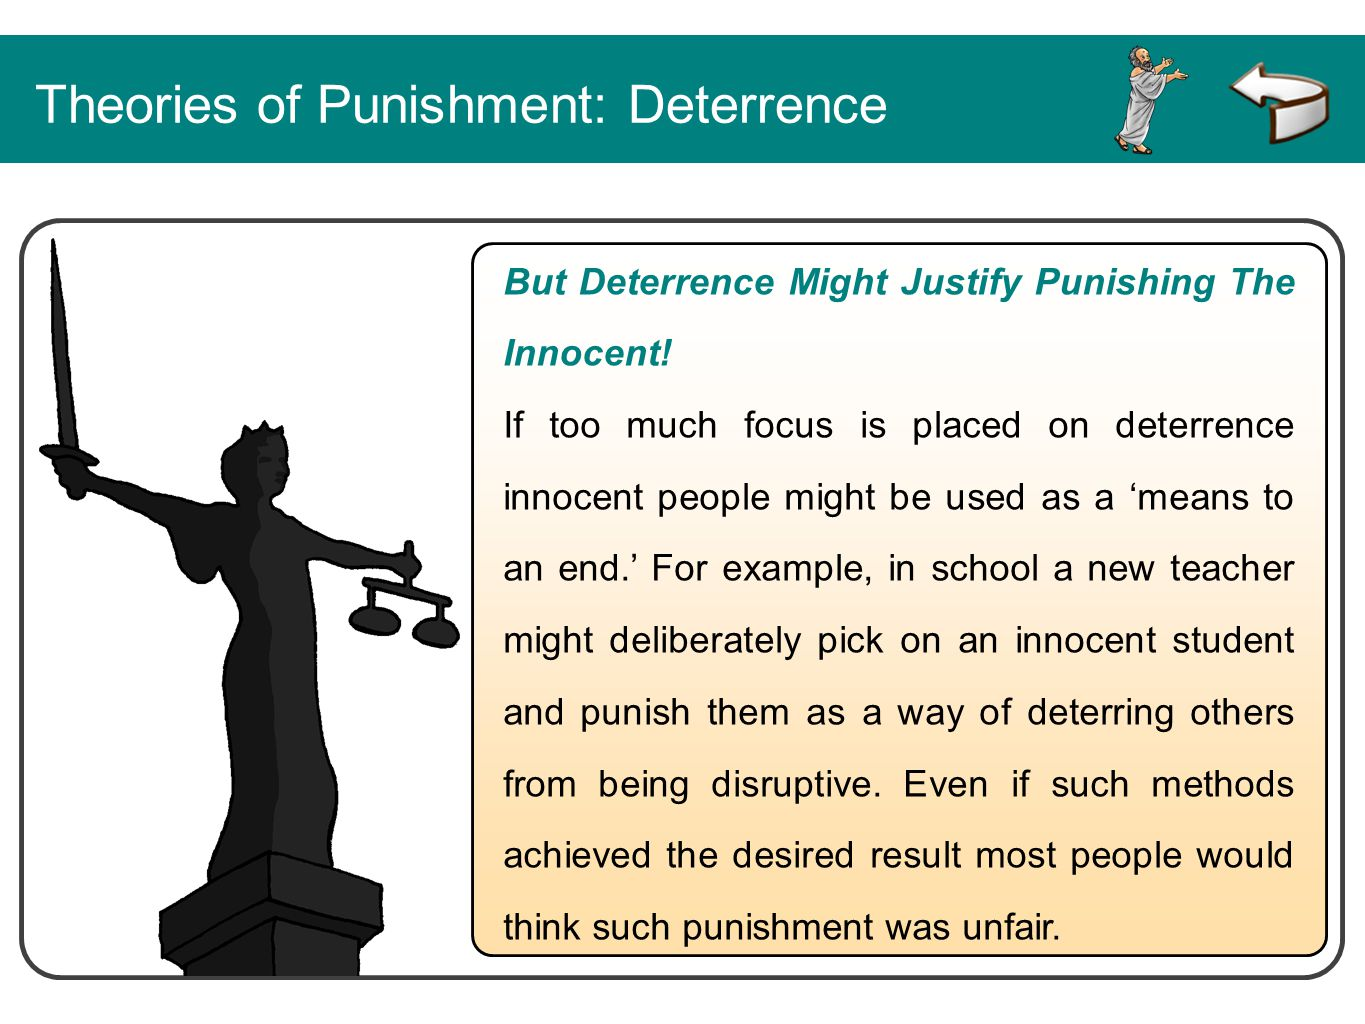 Theories of Punishment: Deterrence